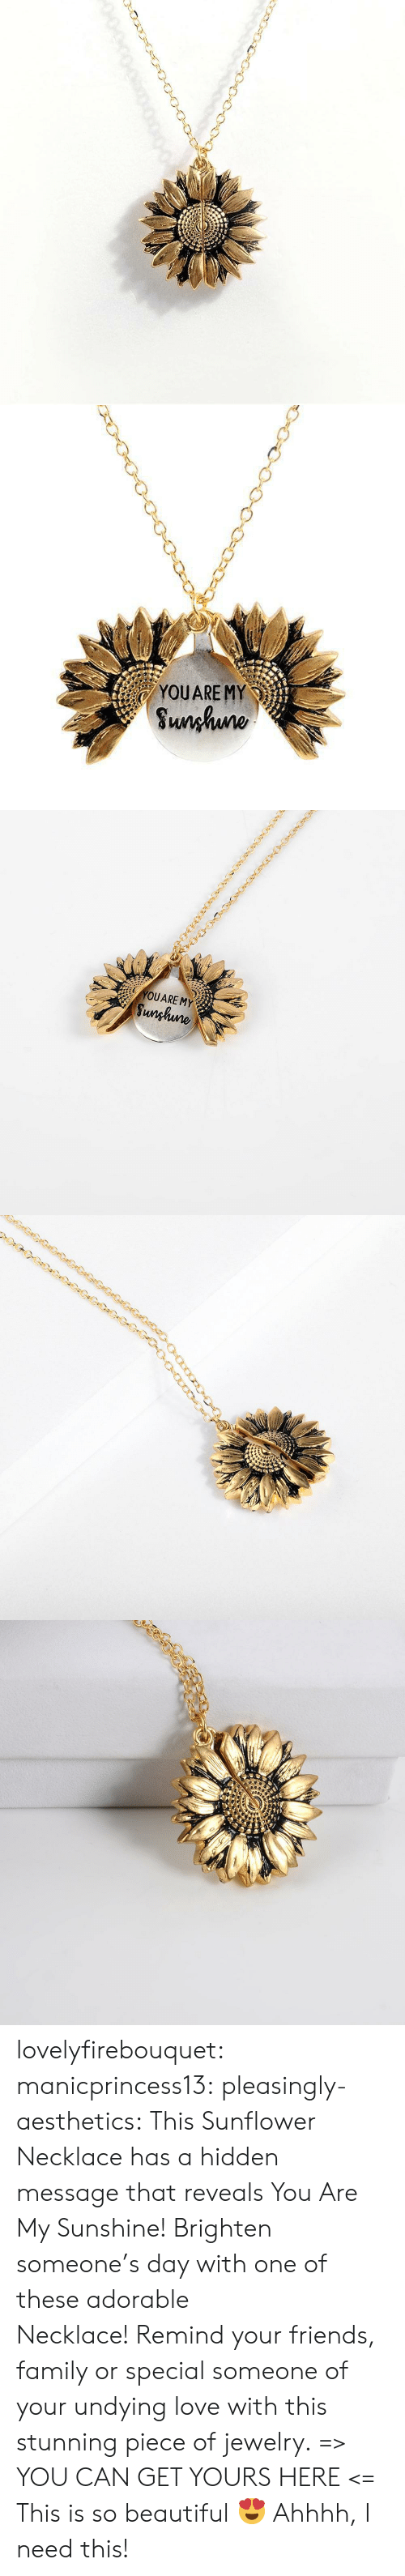 I Need This: YOUARE MY  Sunhuno   YOUARE MY  Sunghune lovelyfirebouquet:  manicprincess13: pleasingly-aesthetics:  This Sunflower Necklace has a hidden message that reveals You Are My Sunshine! Brighten someone's day with one of these adorable Necklace!Remind your friends, family or special someone of your undying love with this stunning piece of jewelry. => YOU CAN GET YOURS HERE <=   This is so beautiful ?   Ahhhh, I need this!